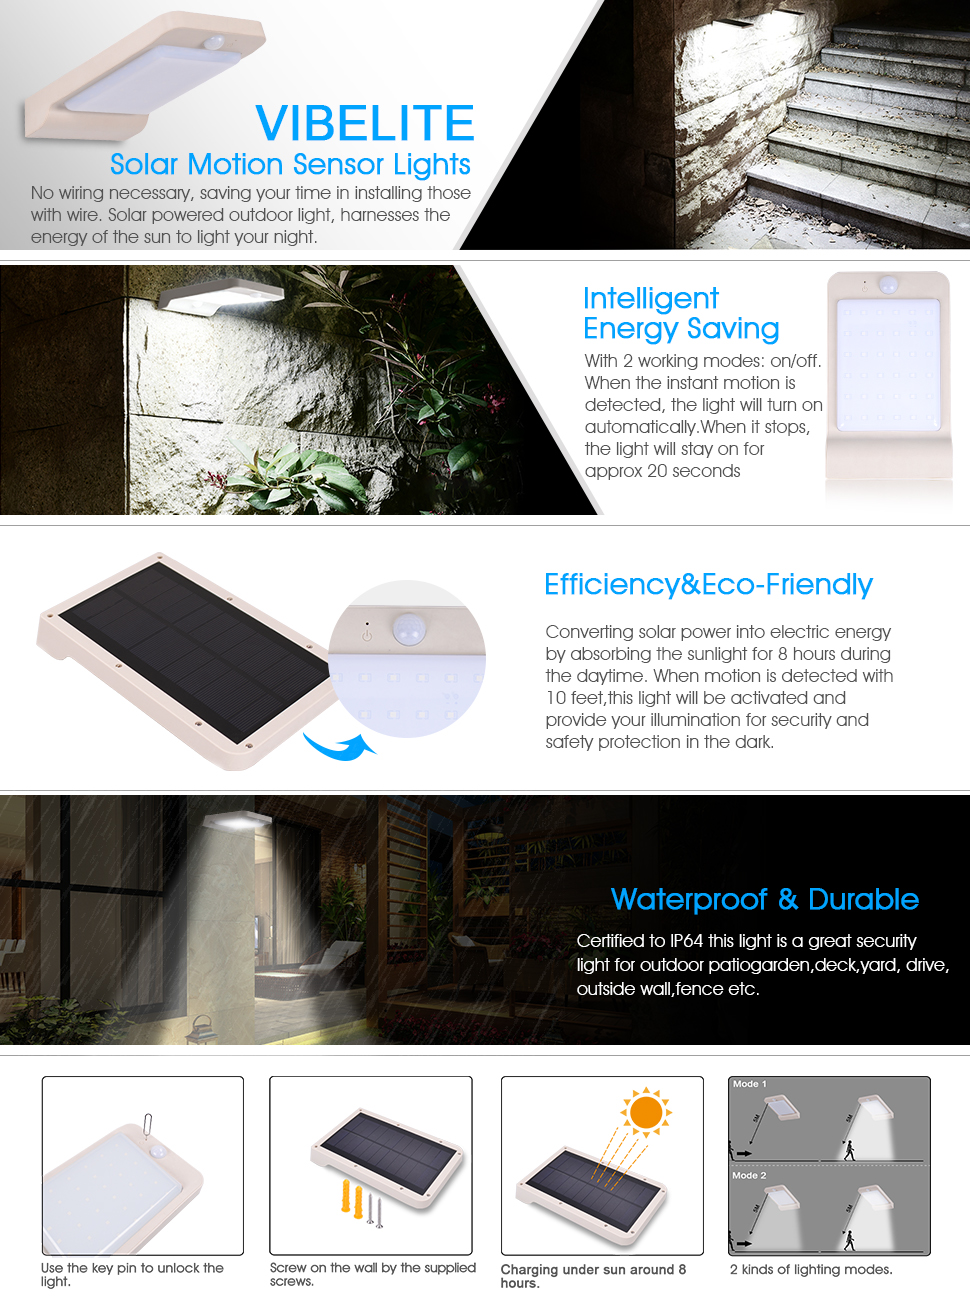 Solar Lights Vibelite 36 Led Outdoor Motion Sensor Wiring In Parallel Light Can Illuminate Your Home Yard Driveway Patio And Anywhere Which Getting Energy The Is Triggered When Someone